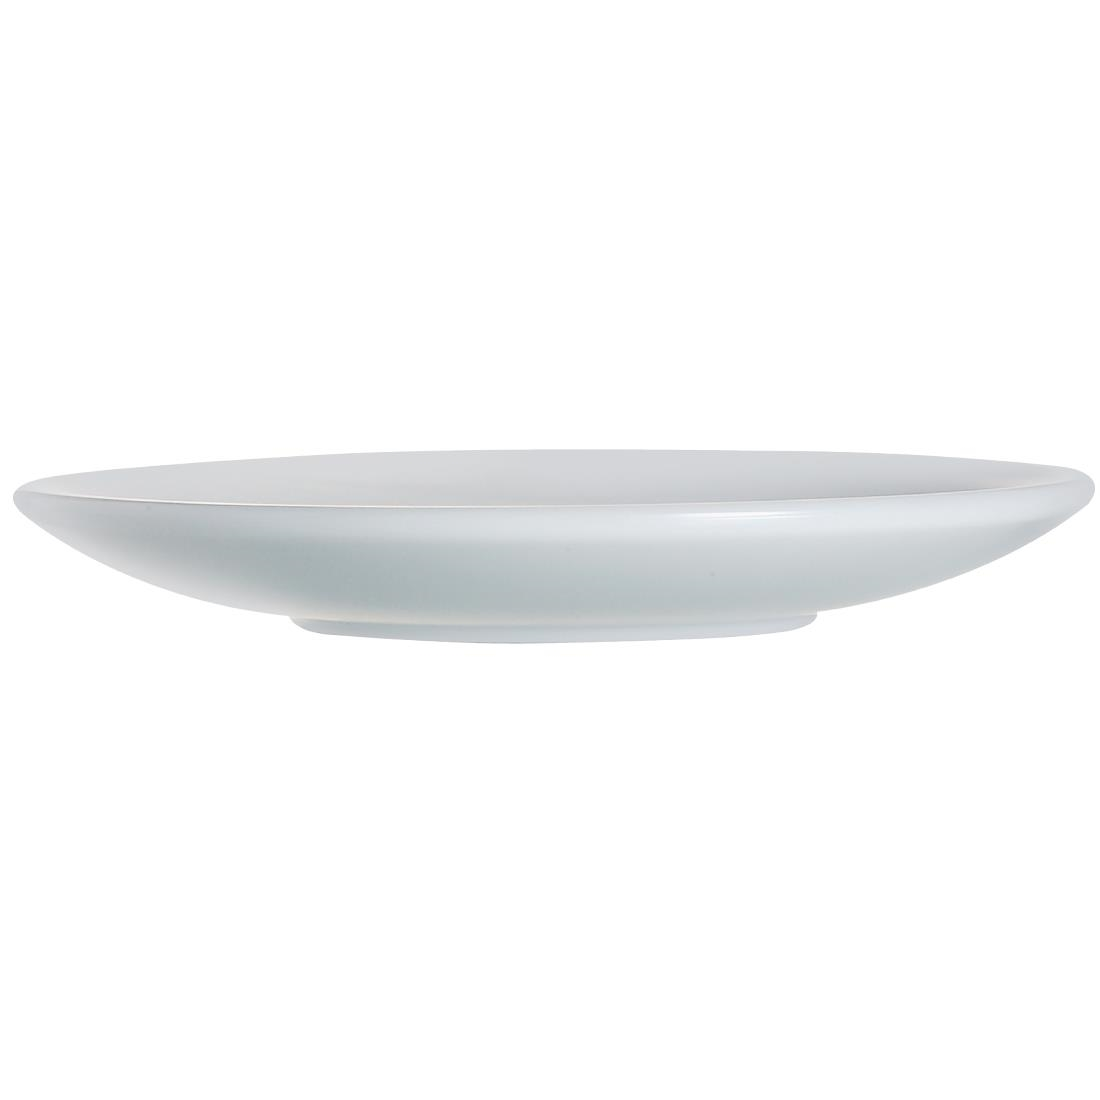 Image of Arcoroc Opal Saucers 144mm (Pack of 6) Pack of 6